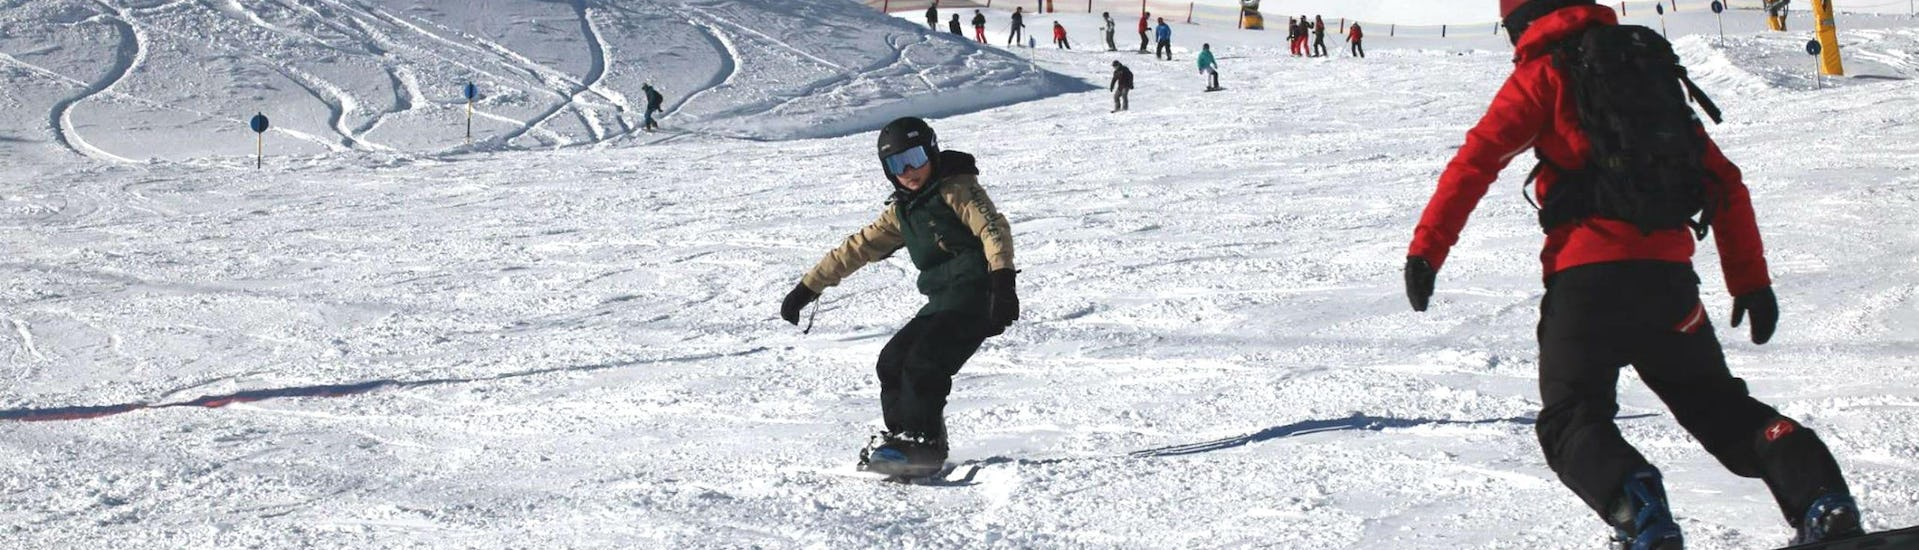 "A young snowboarder is practicing his front and backside turns during his Snowboarding Lessons for Kids ""All-Inclusive"" (9-15 years) with the ski school Ski- und Snowboardschule Vacancia."